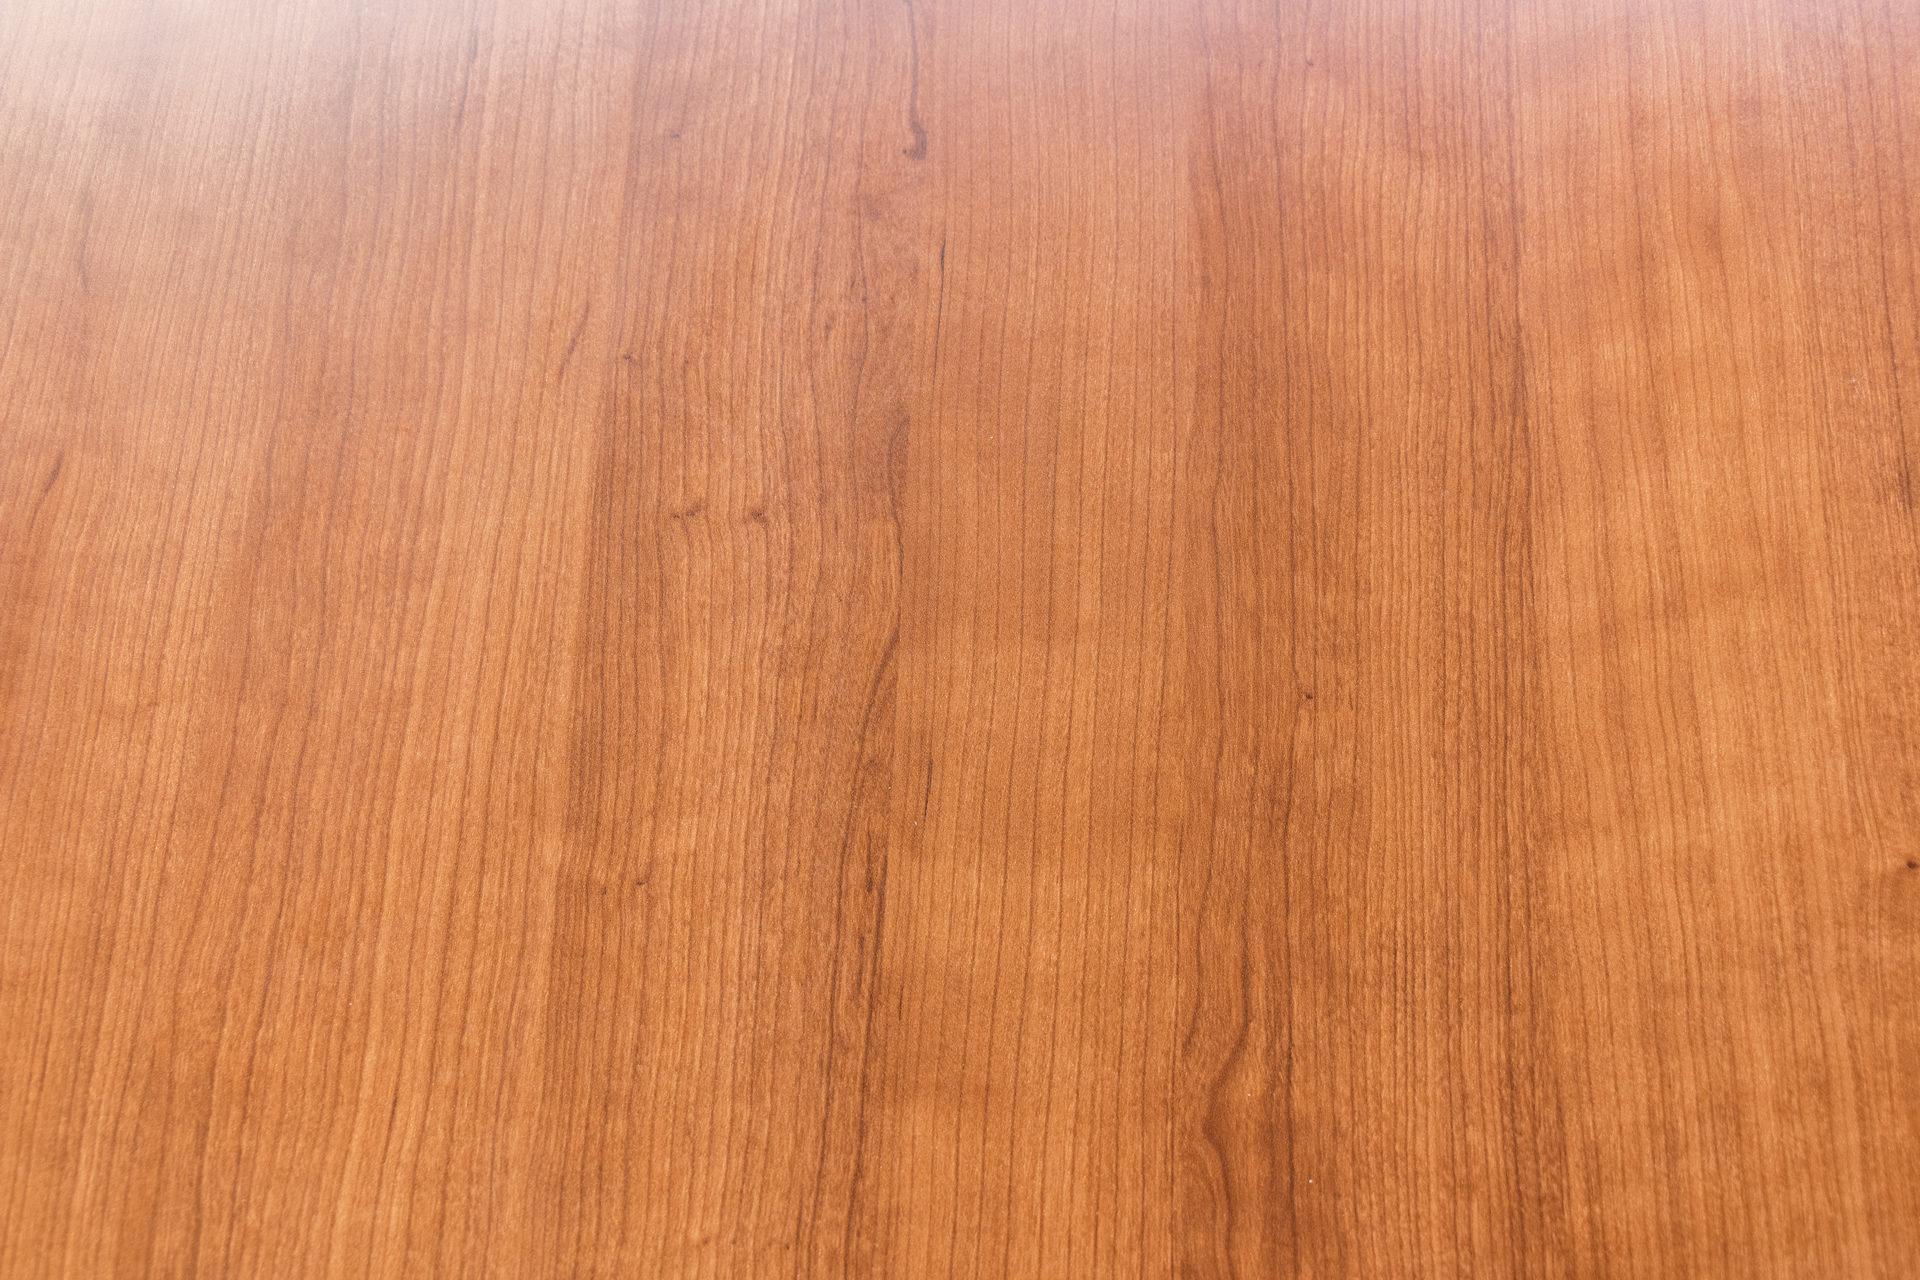 Nienkamper Vox 8′ x 3.5′ Amber Cherry Laminate Tapered Edge Conference Table